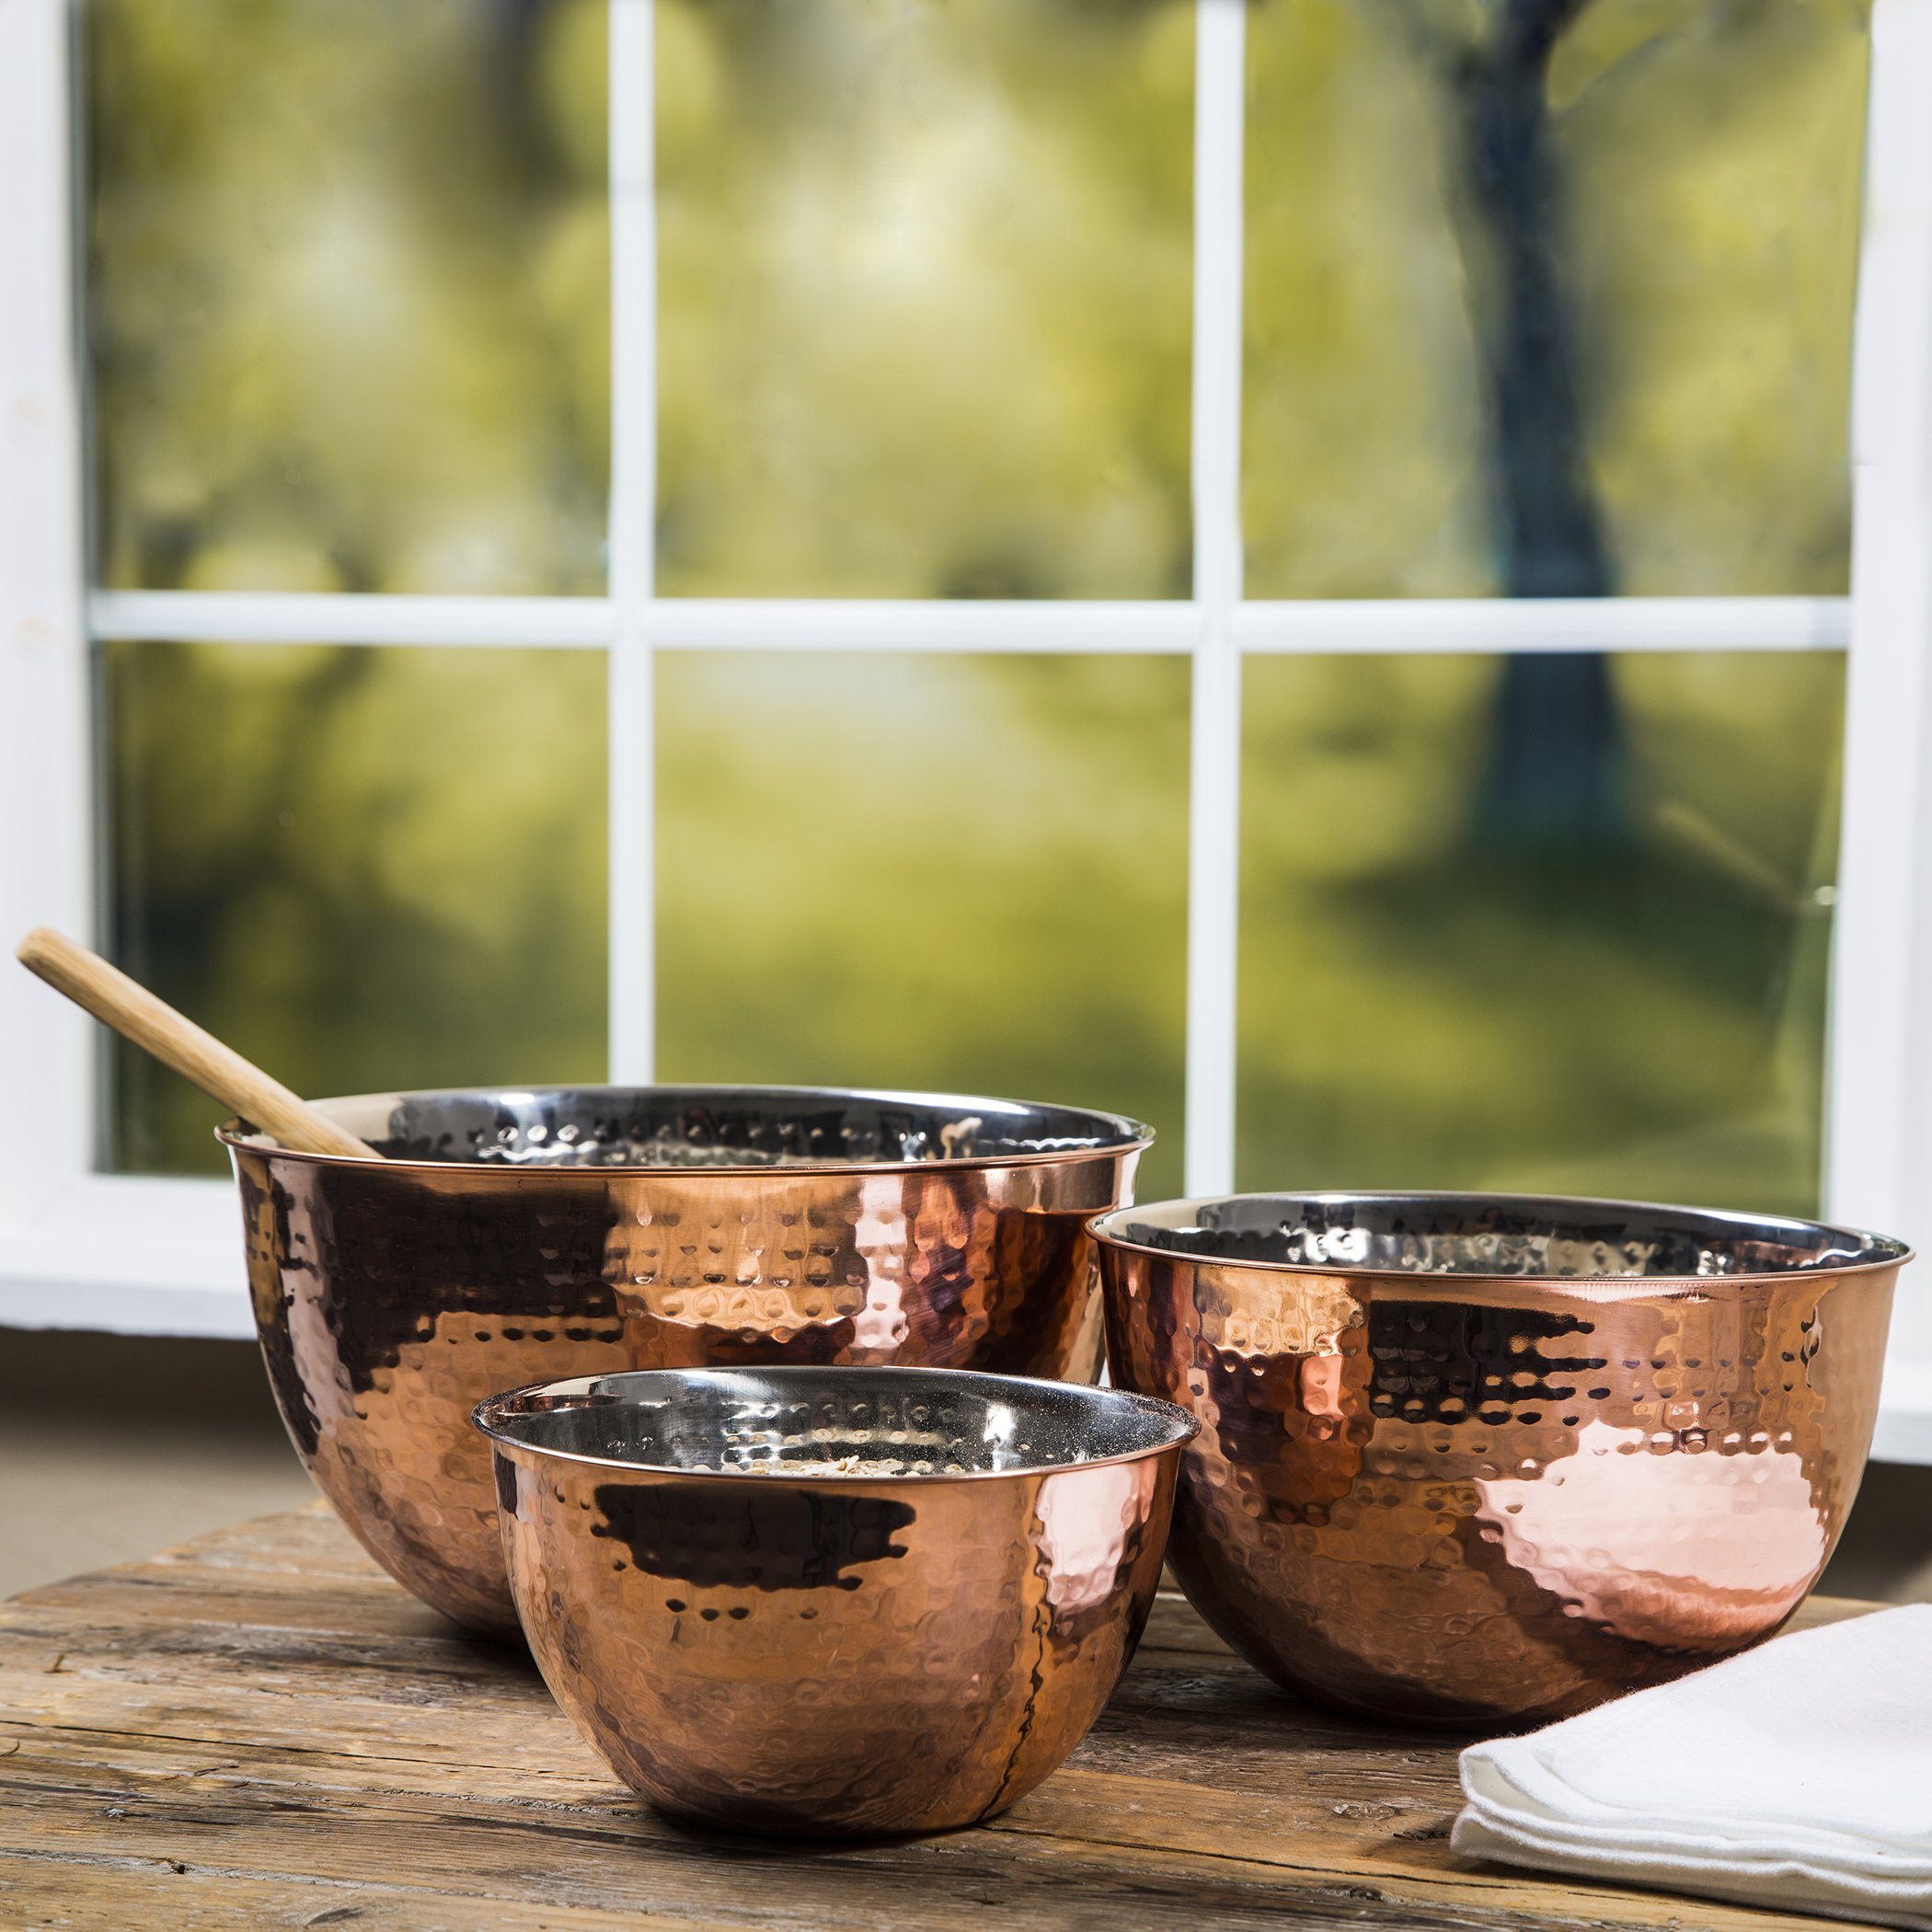 Set Of 3 Copper Hammered Mixing Bowls With Stainless Steel Interior Finish Nesting Bowls, Chef Cookware Set, by Le'raze